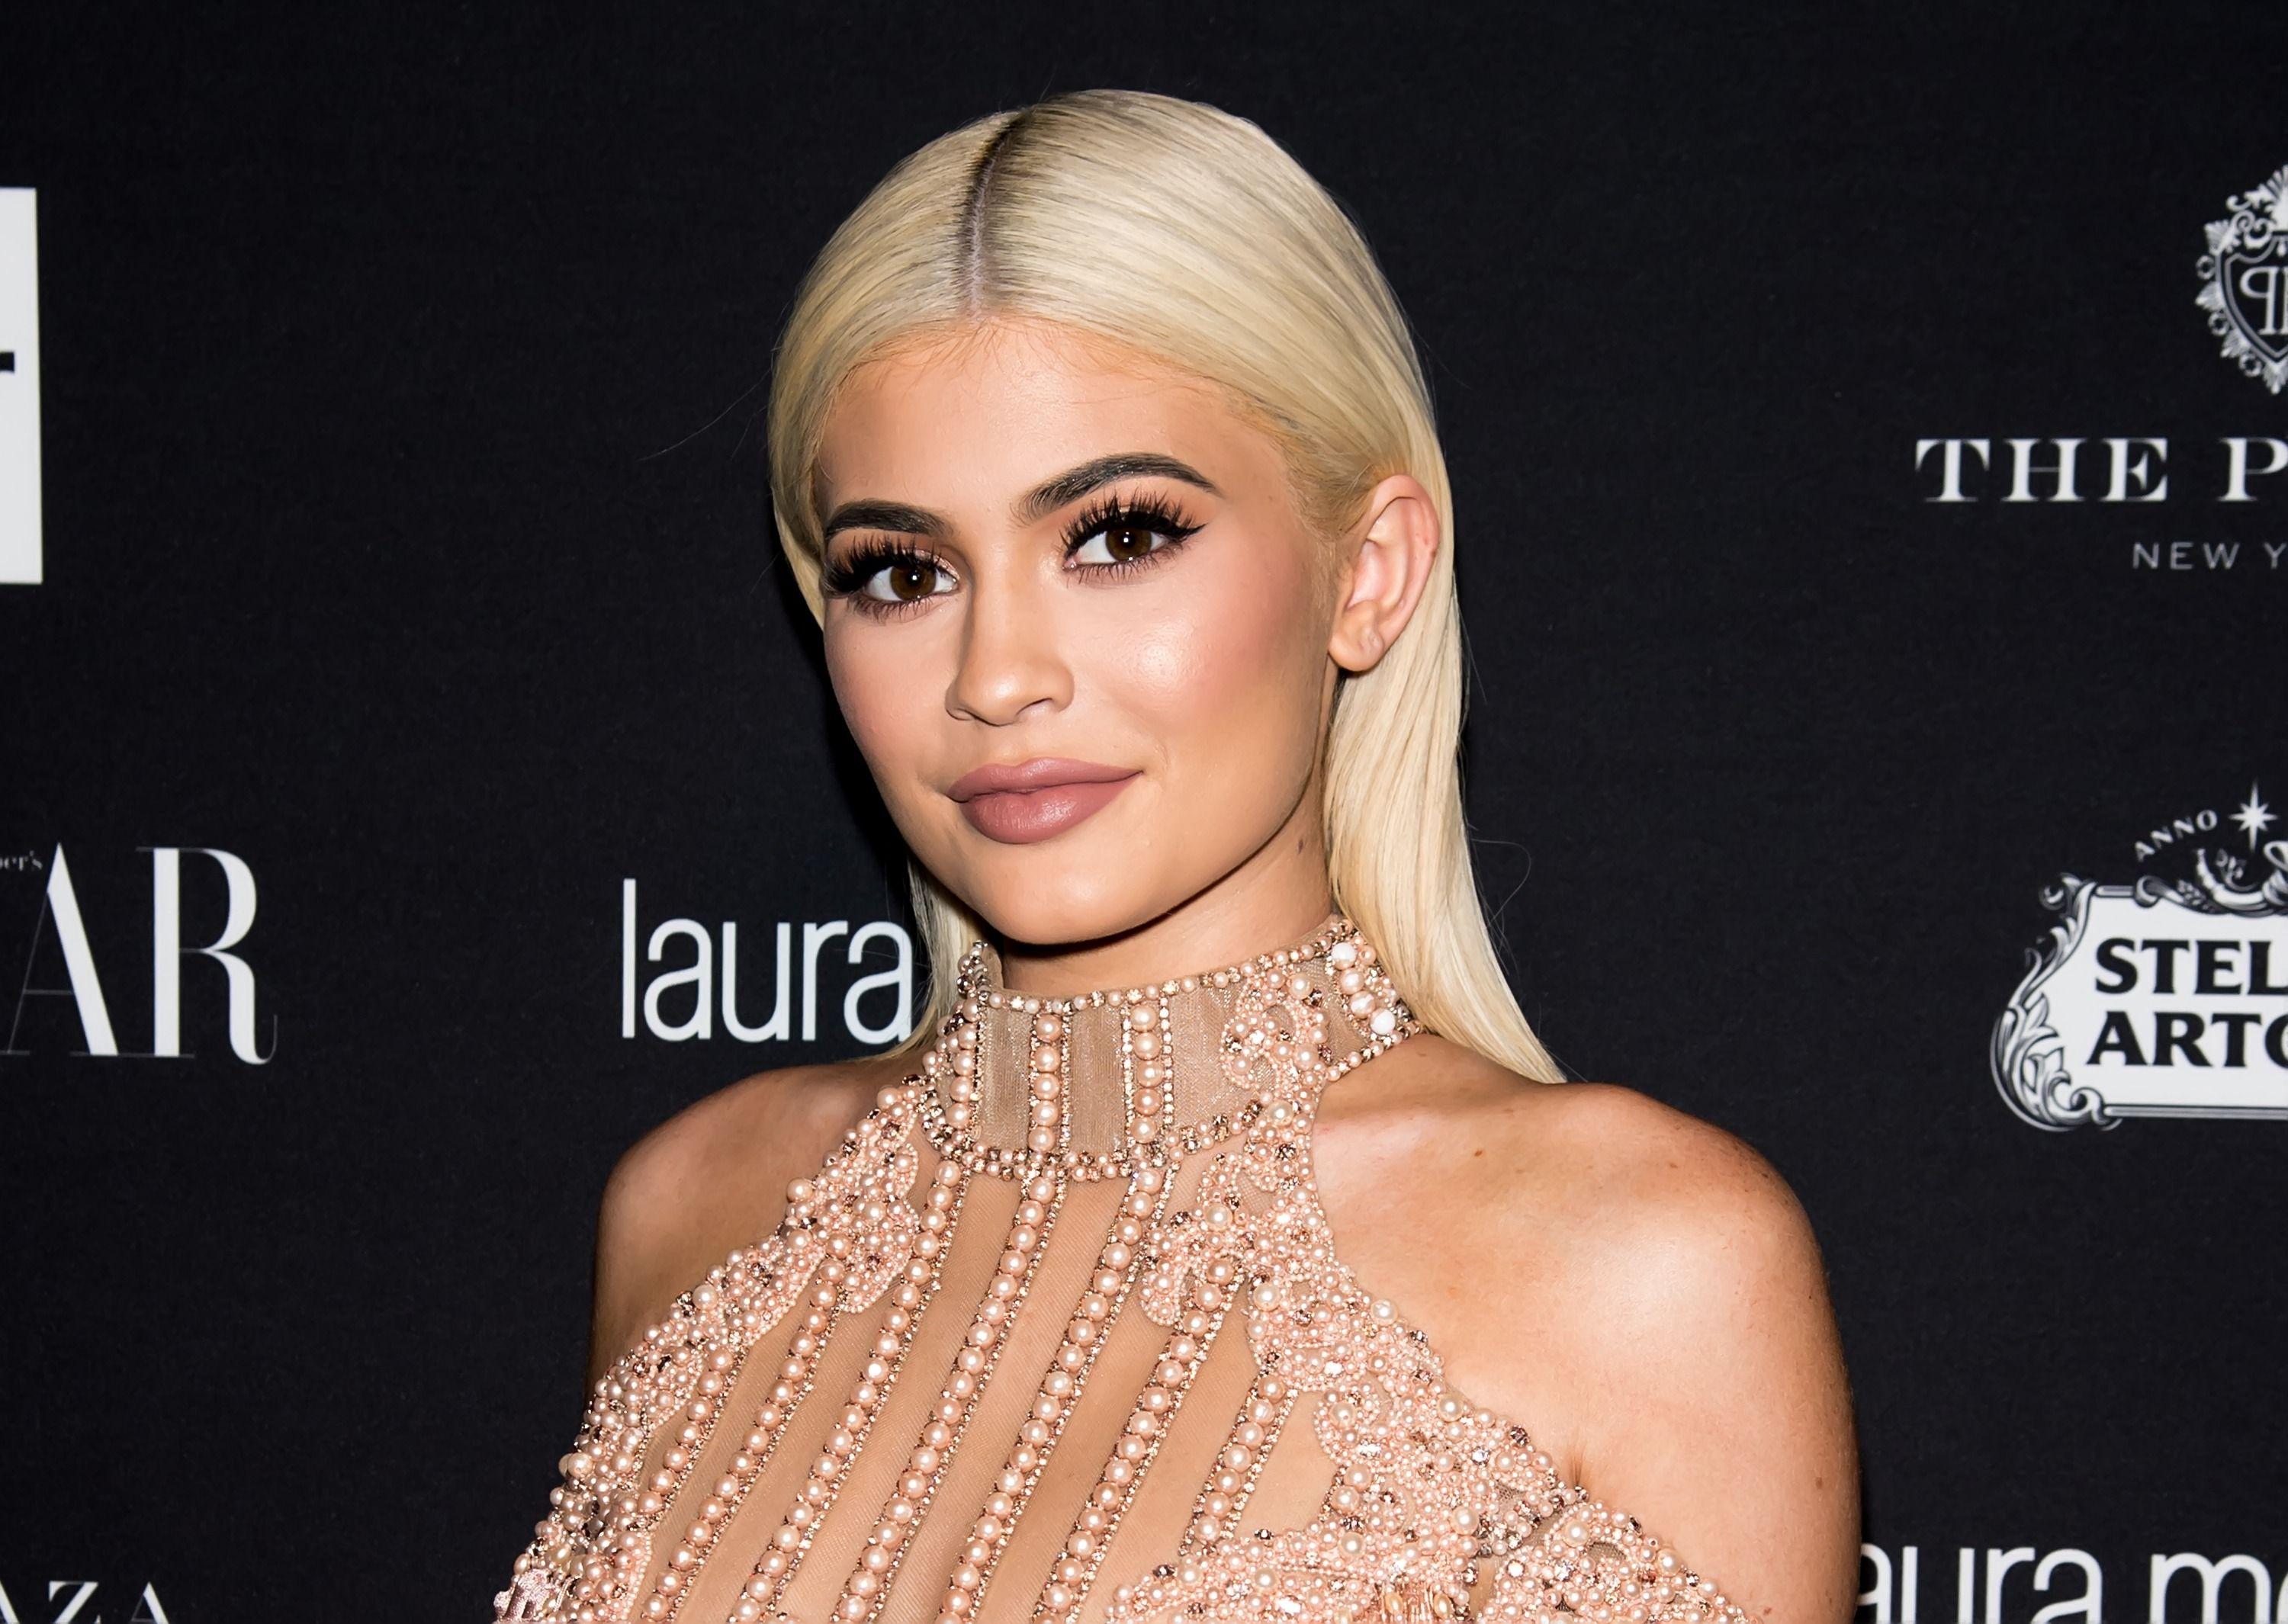 TV Personality Kylie Jenner attends Harper's BAZAAR Celebrates 'ICONS By Carine Roitfeld' at The Plaza Hotel in New York City | Photo: Getty Images